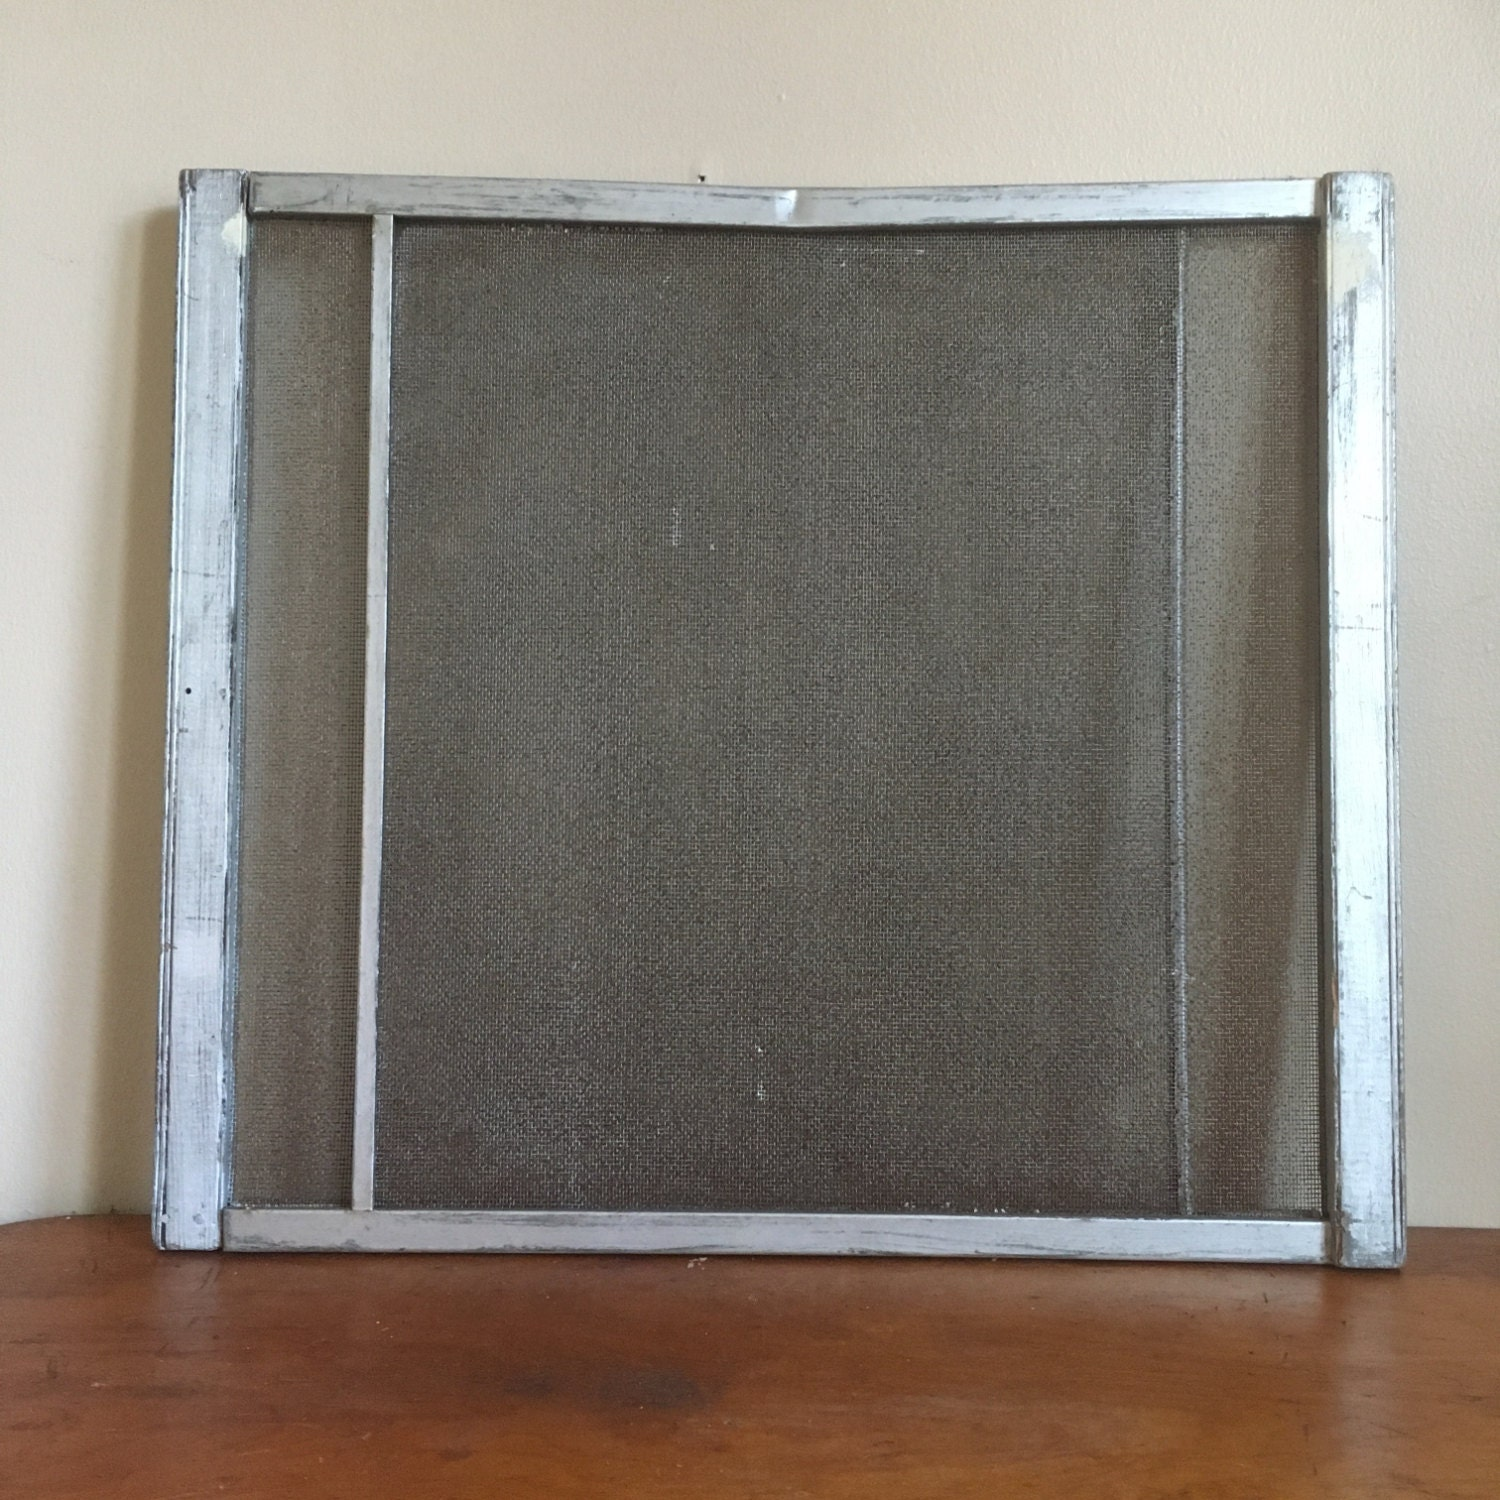 Adjustable Window Screen Sold By Ironboundvintage